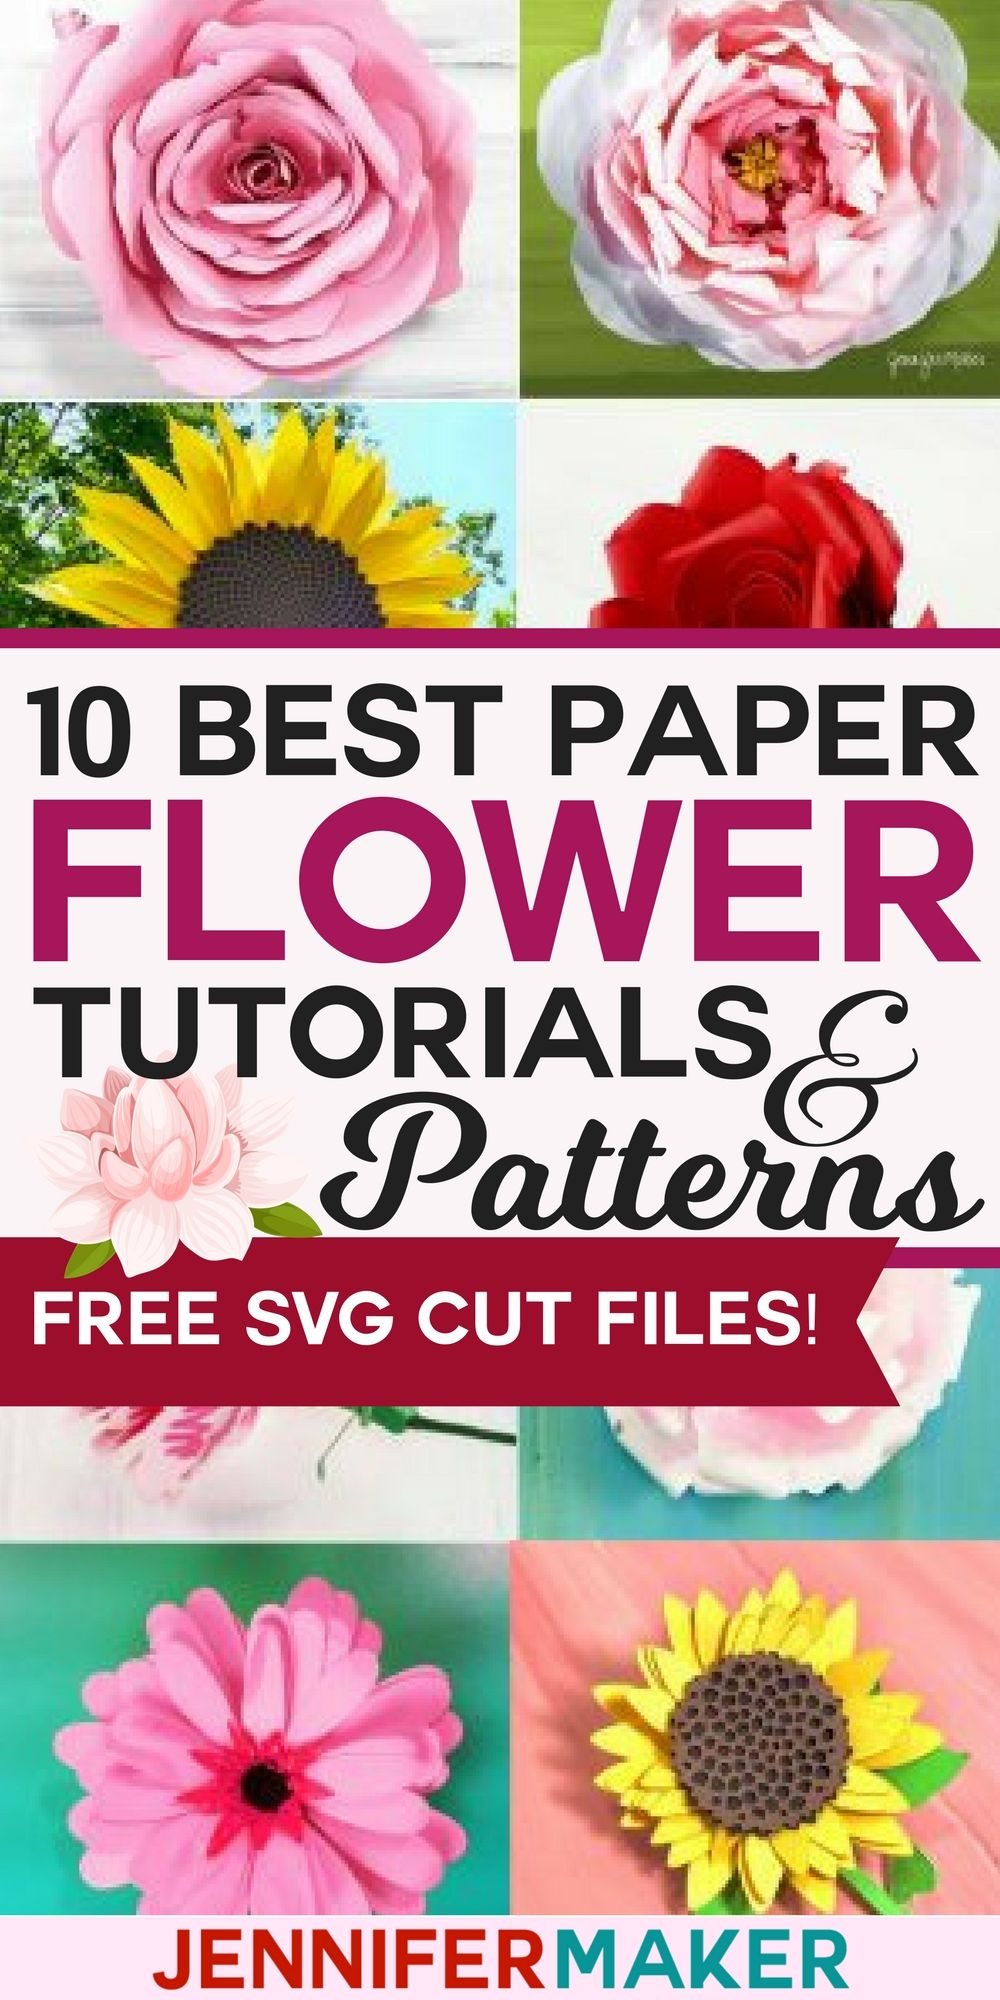 How To Make Diy Paper Flowers Giant Paper Flowers Pinterest